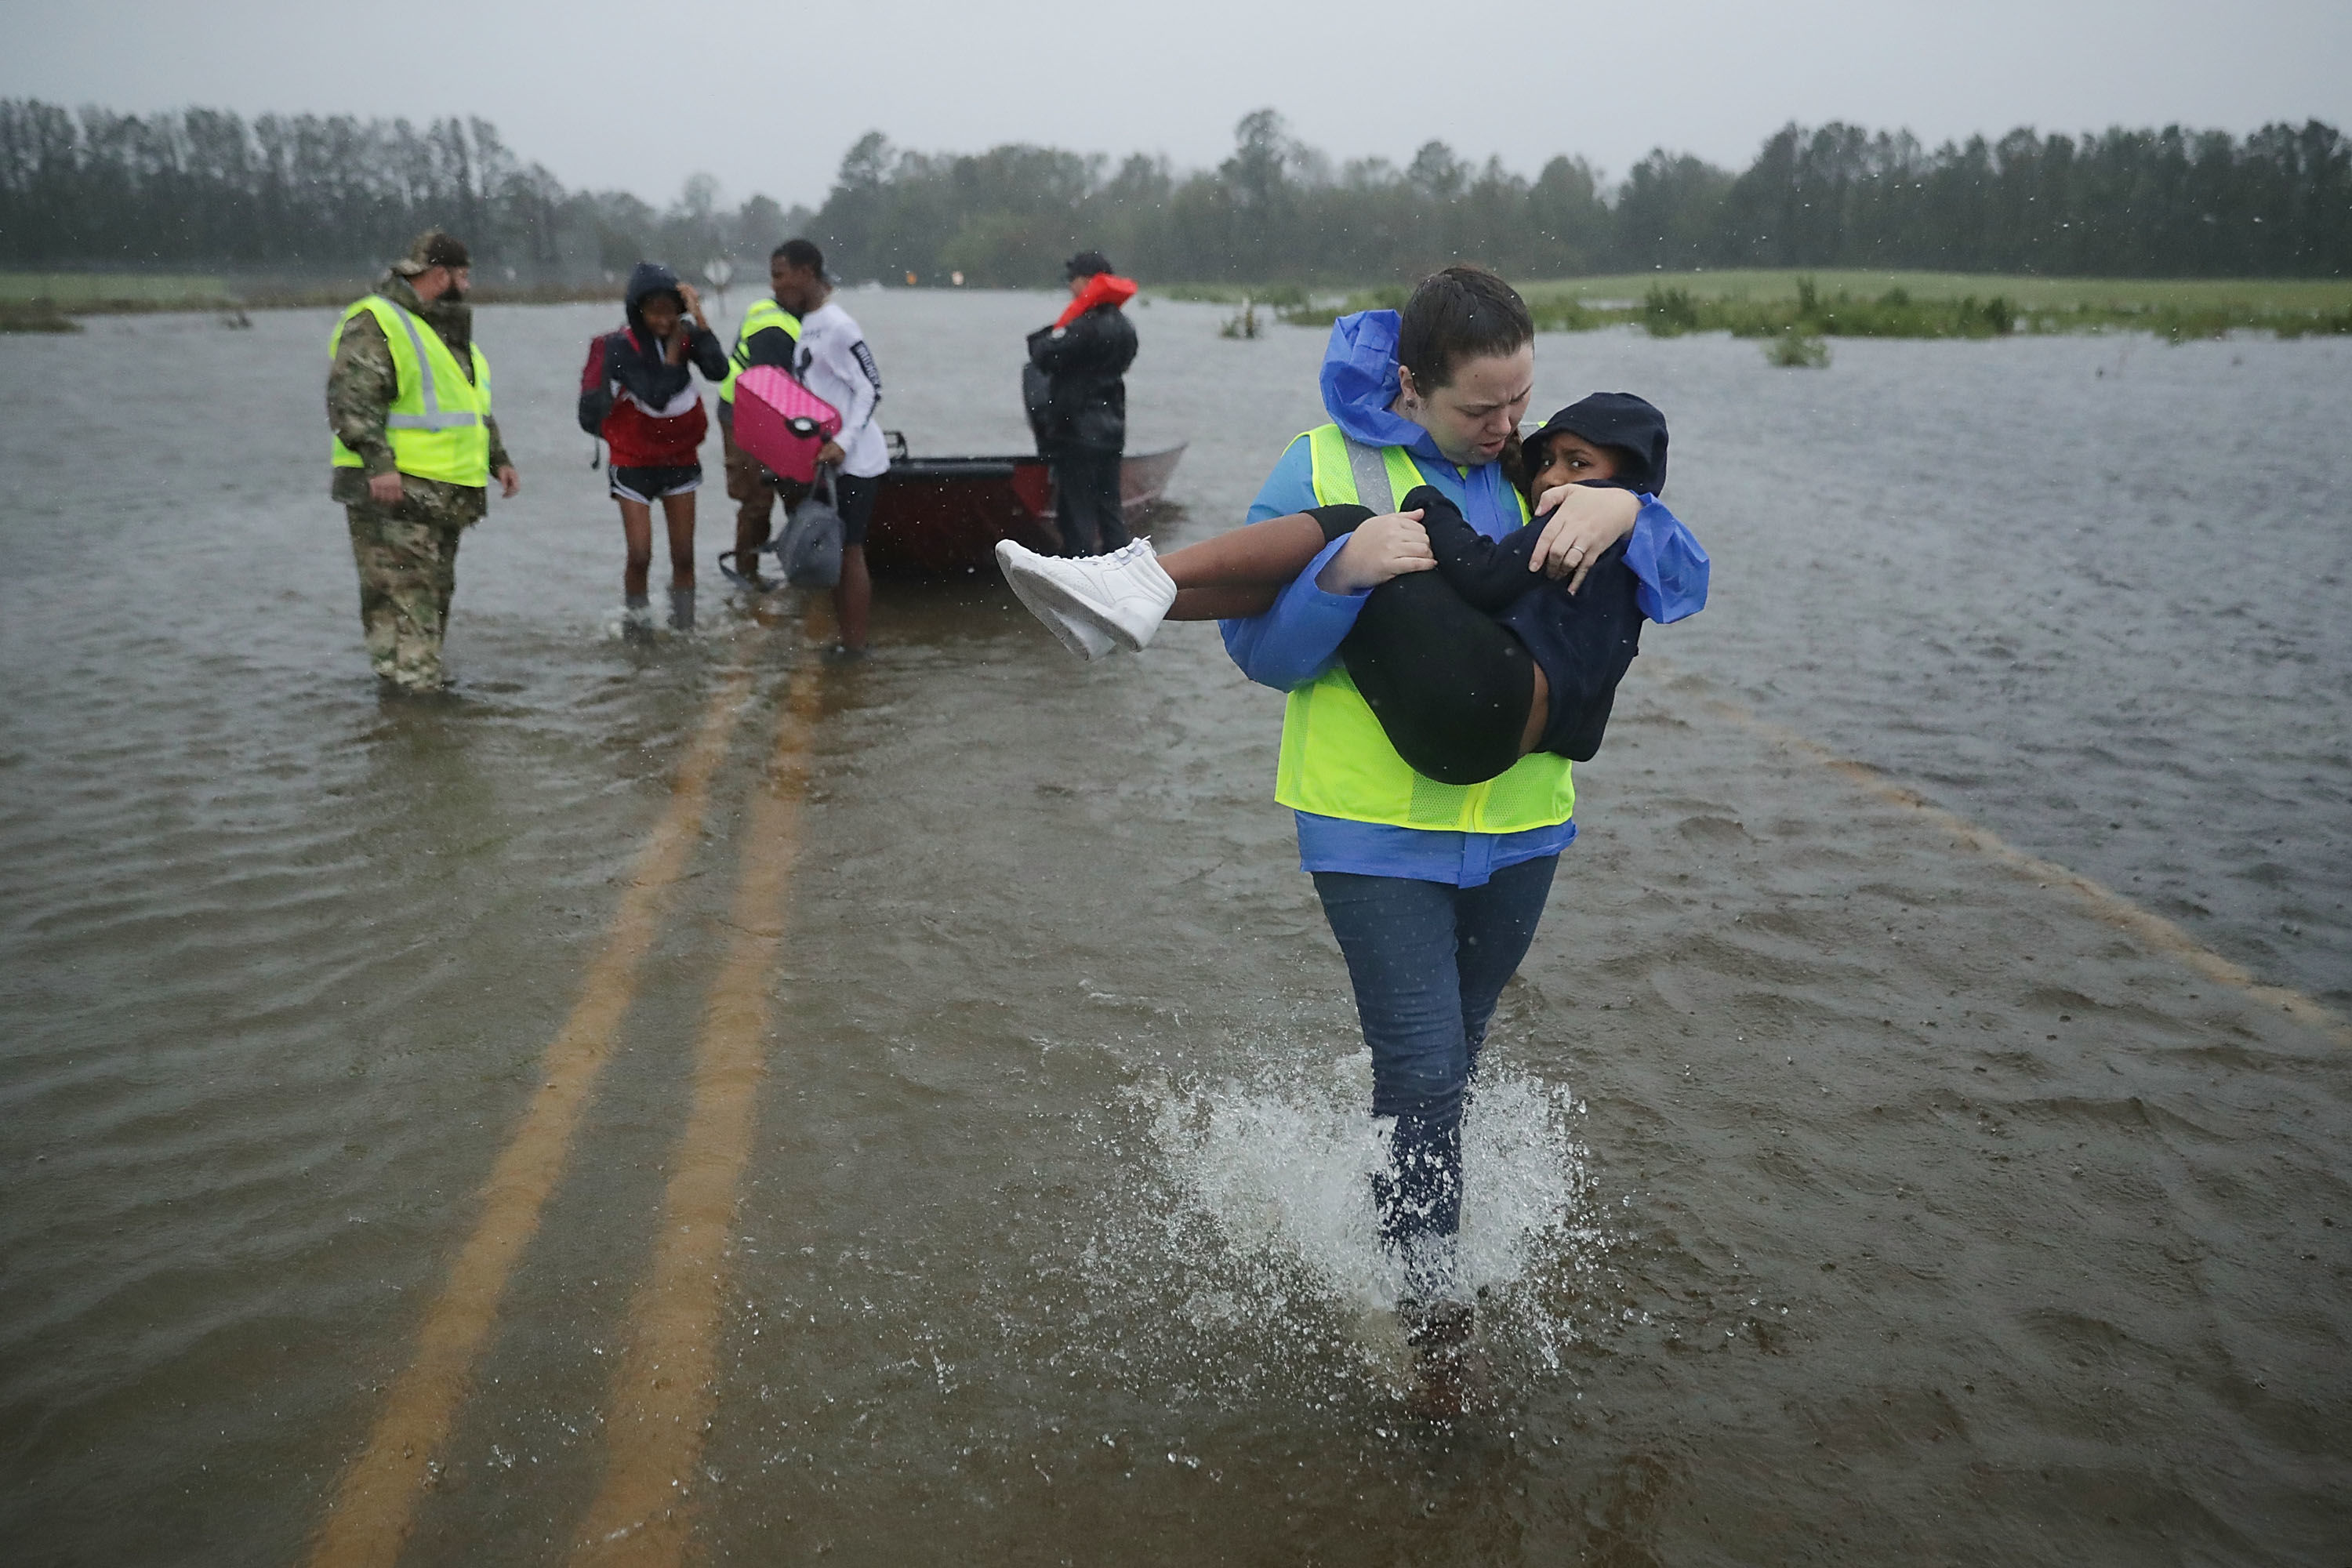 How to Help With Hurricane Florence Relief